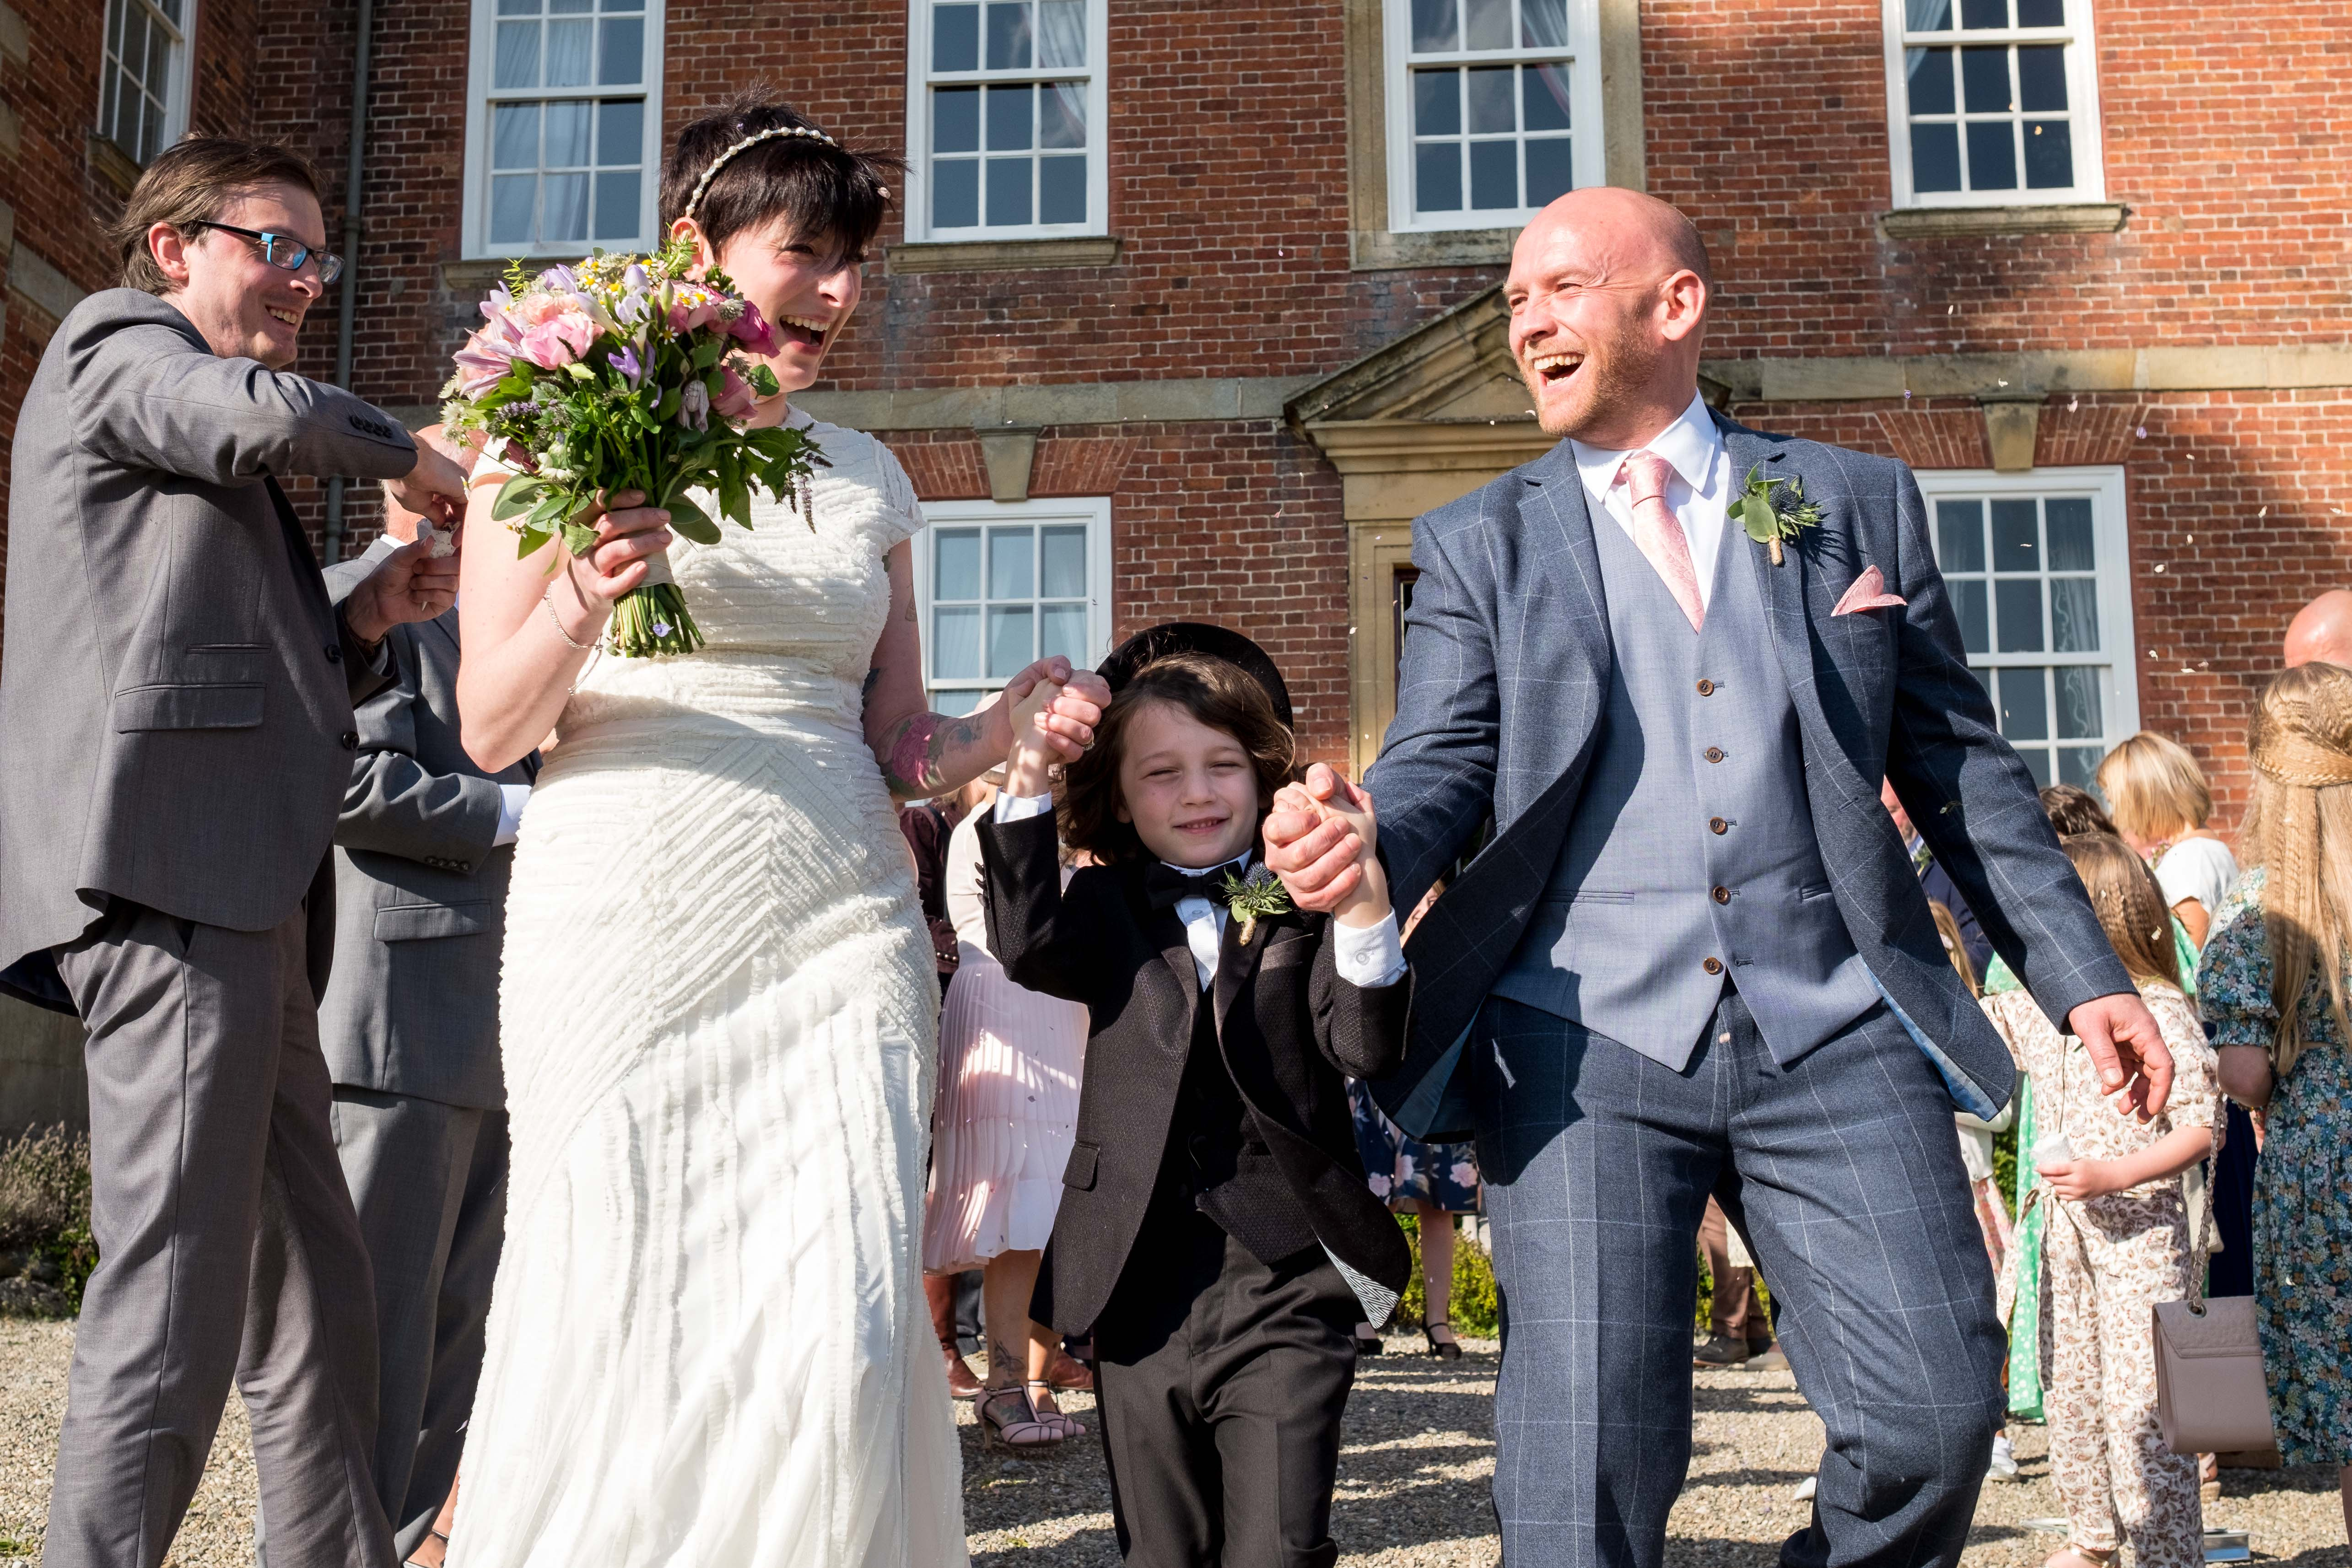 Llangollen wedding at Trevor Hall confettie being thrown over the bride and groom.